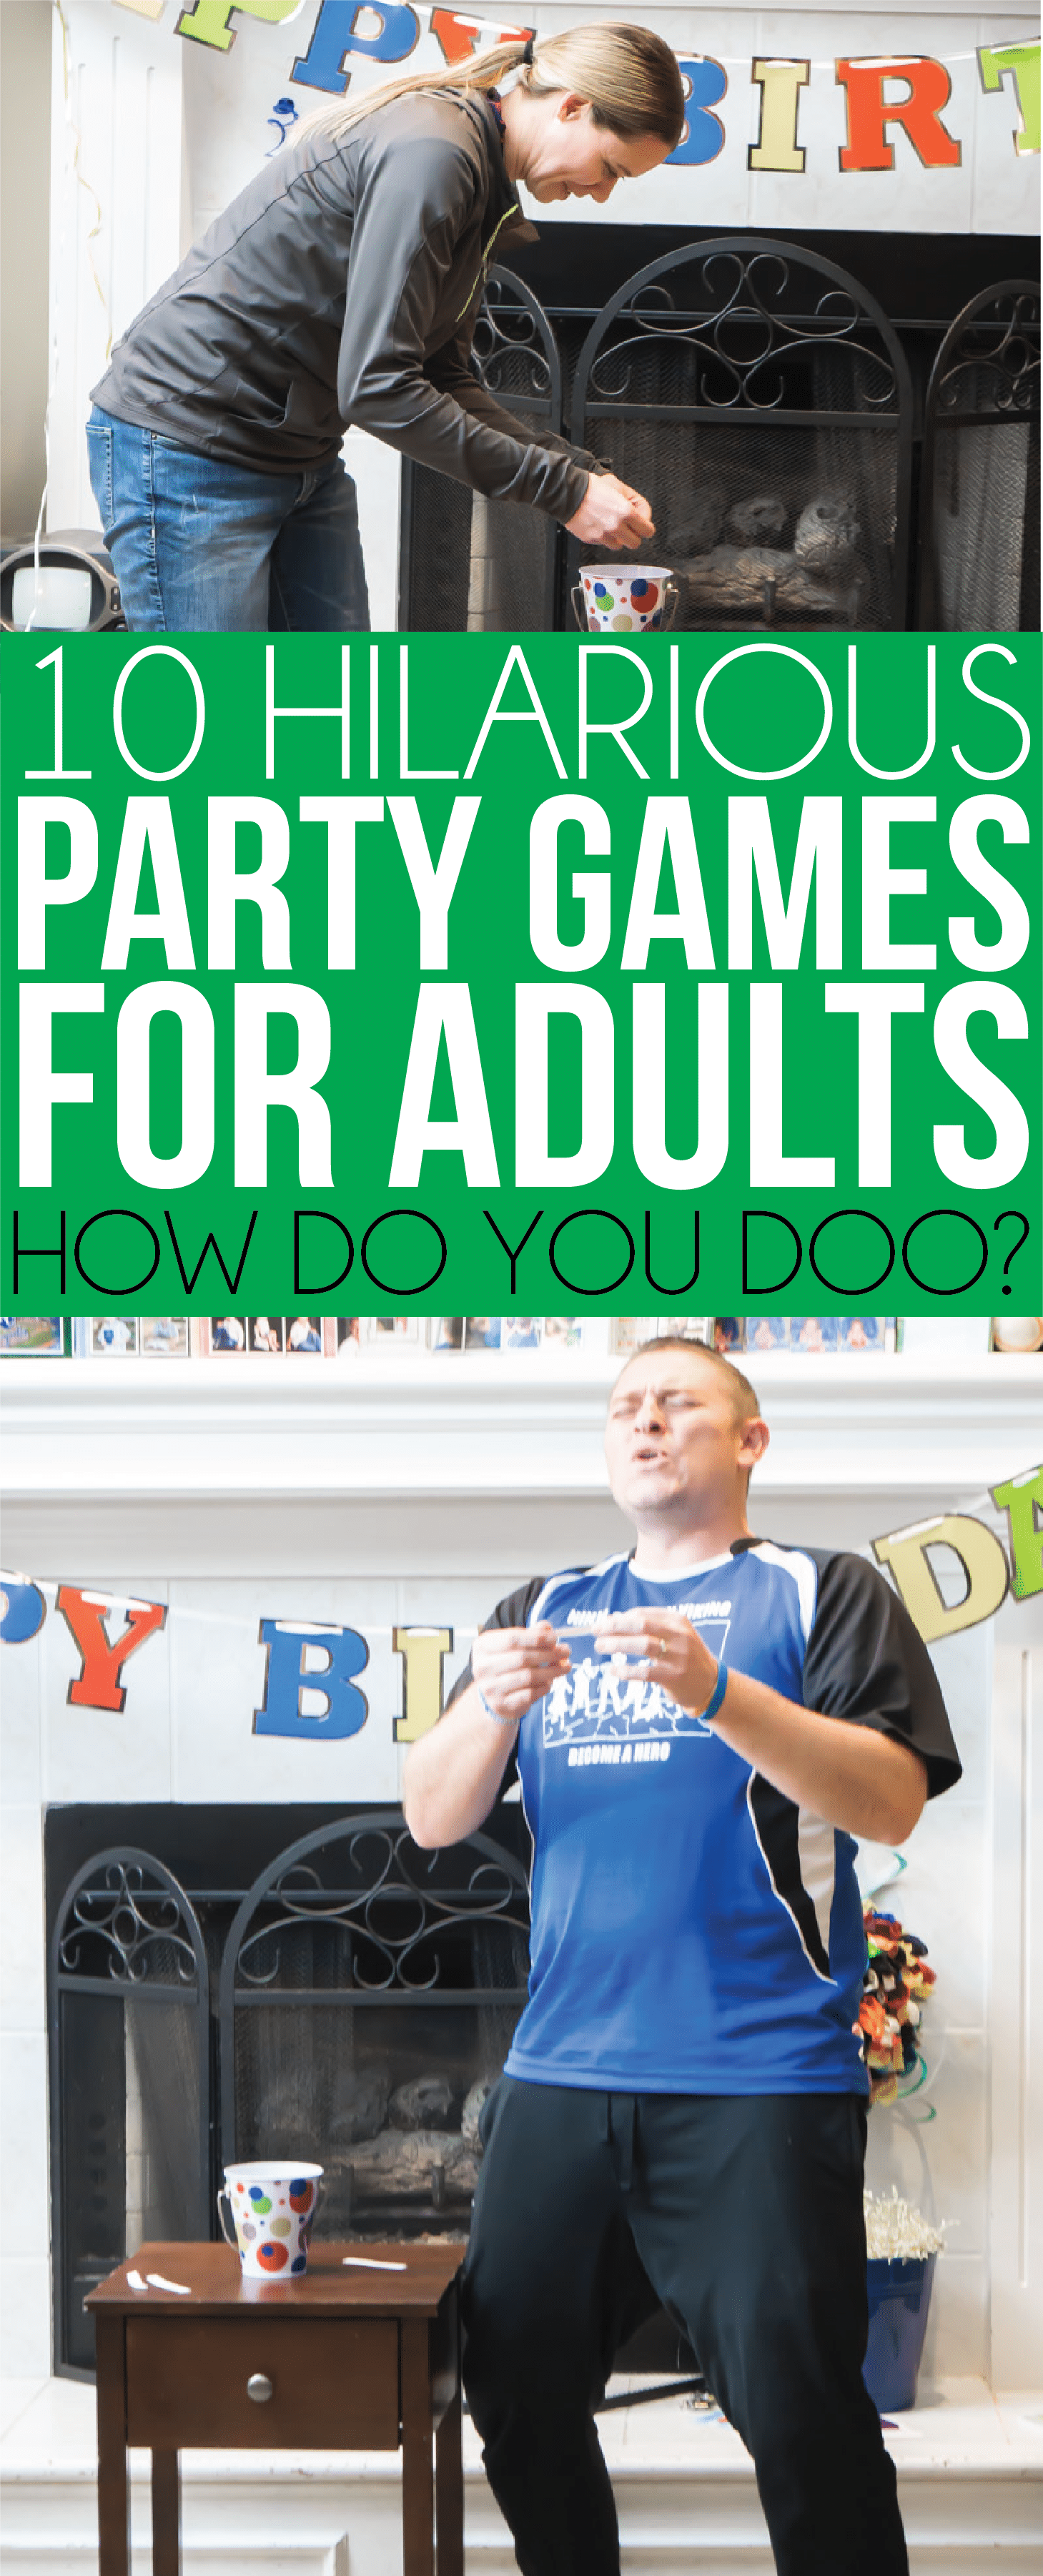 House party games | Party games for adults